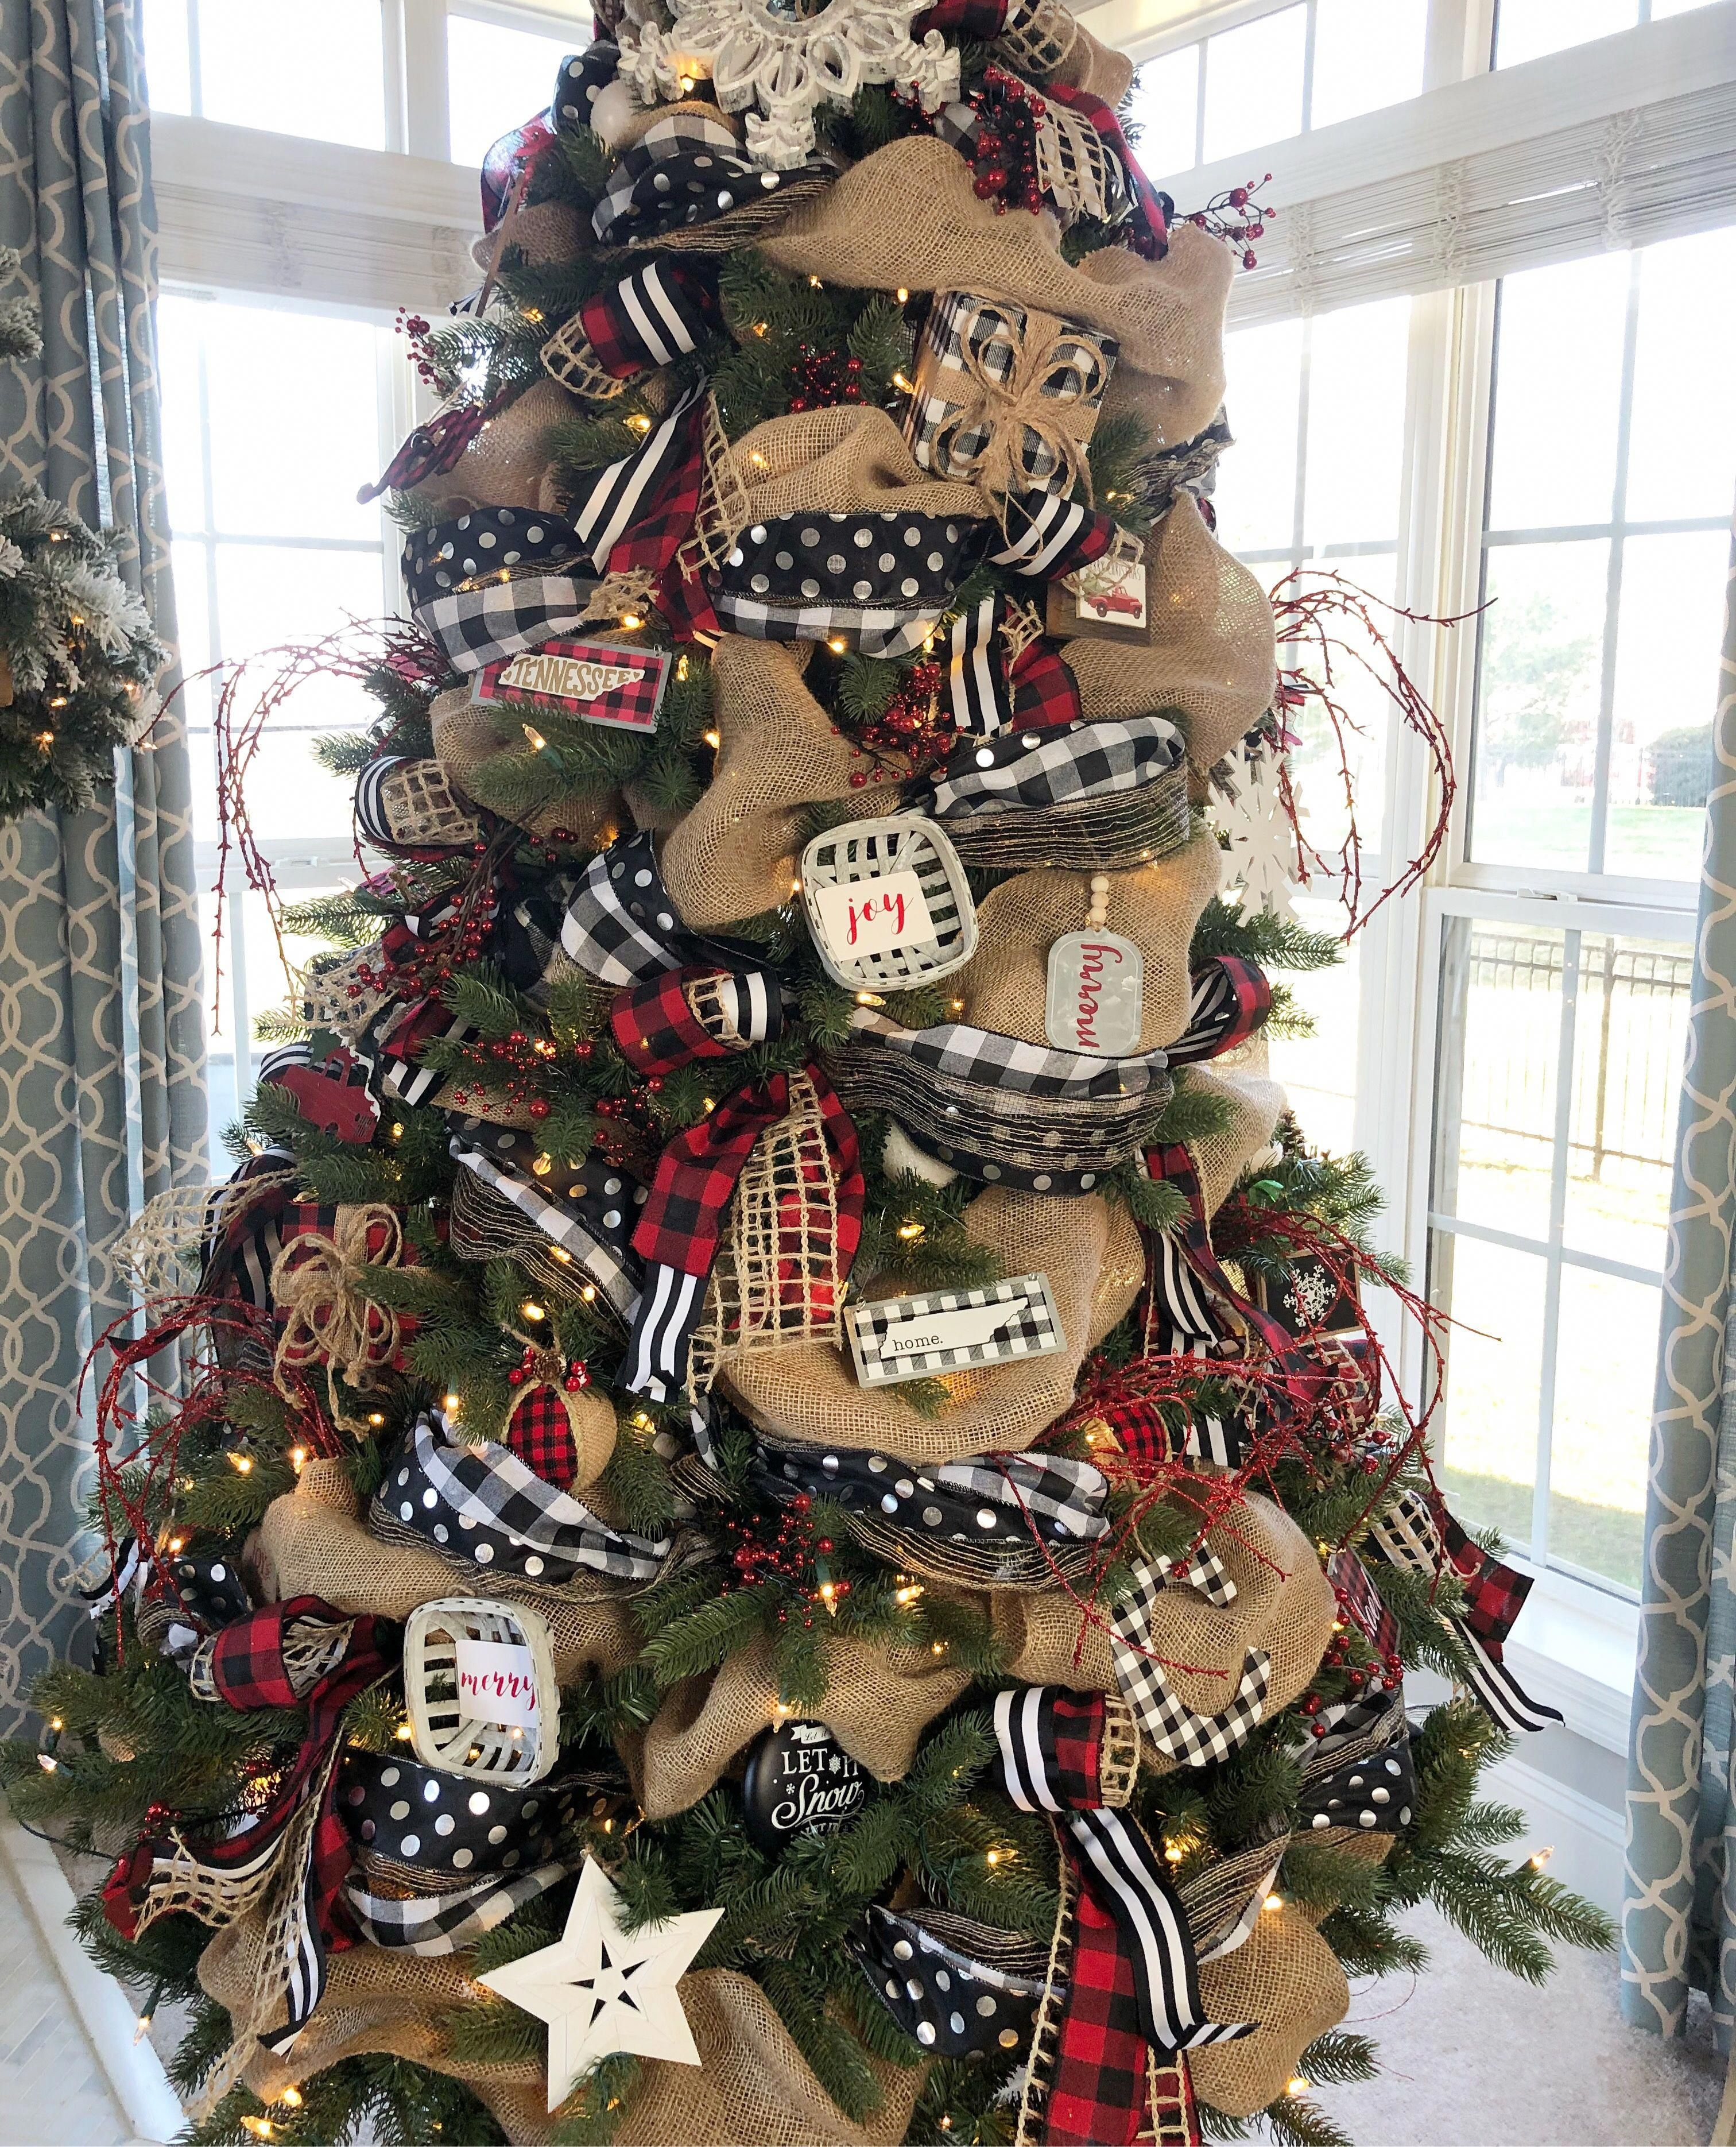 Christmas Ideas Kent Christmas Ideas For Boys Ribbon On Christmas Tree Christmas Decorations Rustic Tree Rustic Christmas Tree